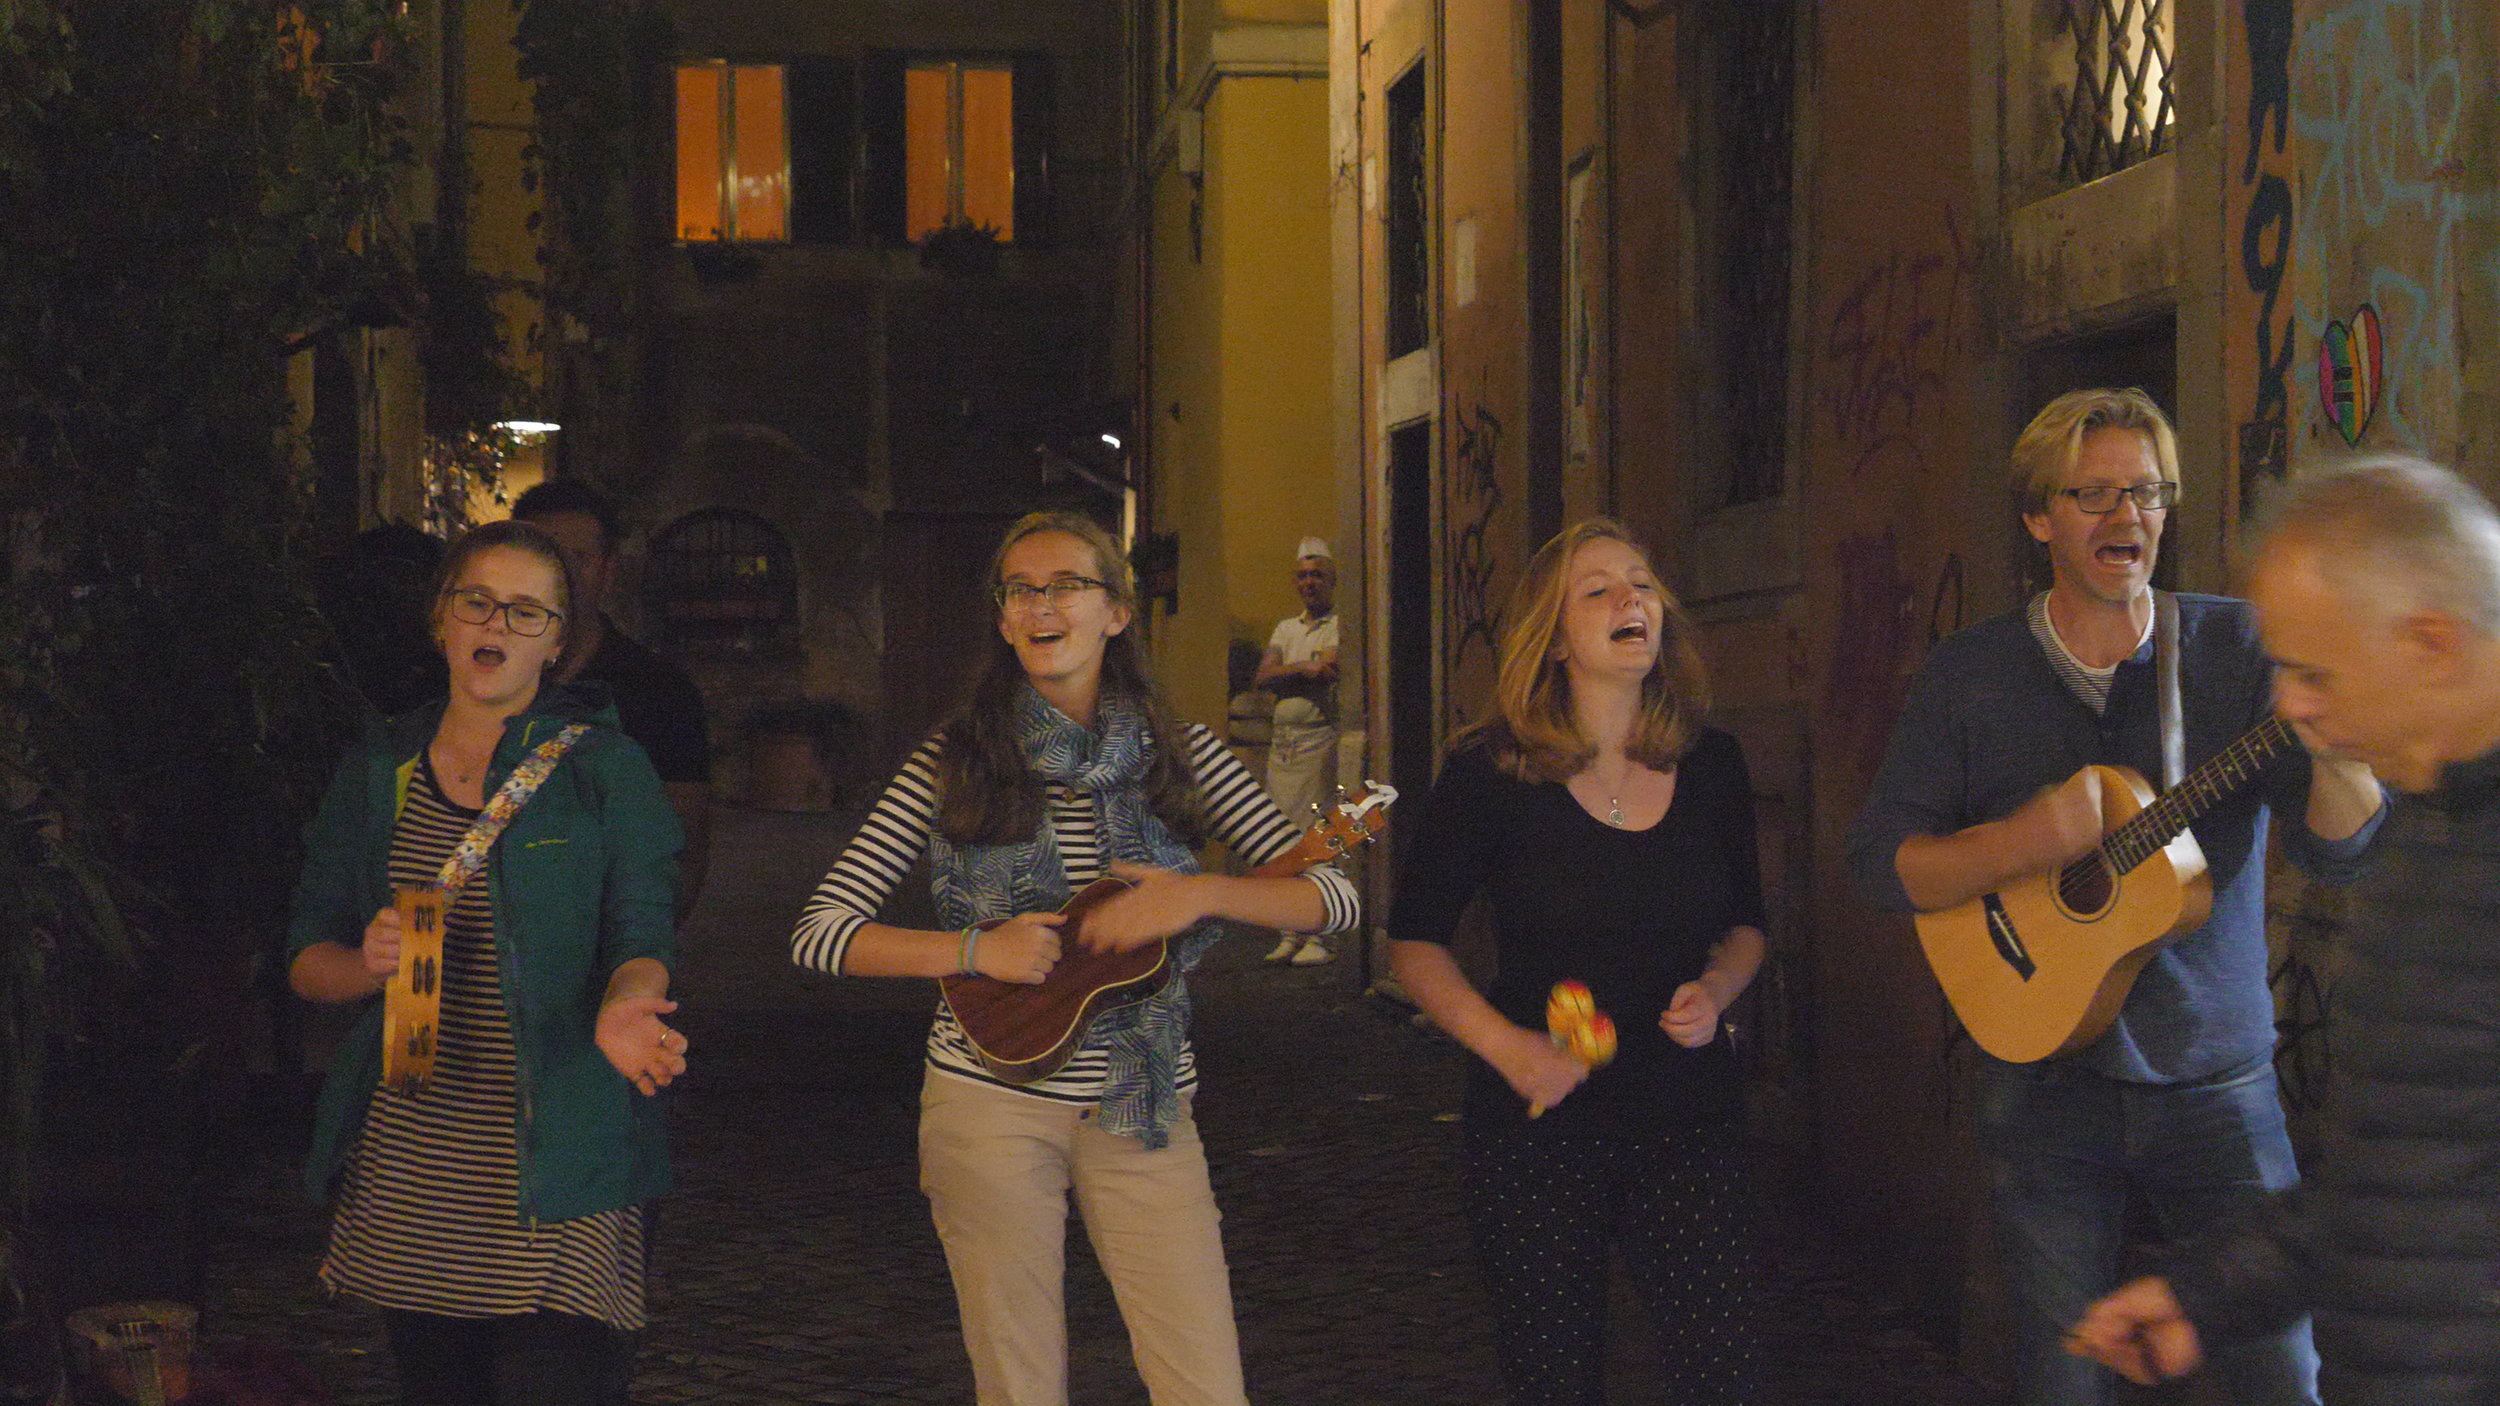 Erik & Sons busking in the Trastevere neighborhood in Rome. (L to R: Jaci, Kate, Alison & Erik)